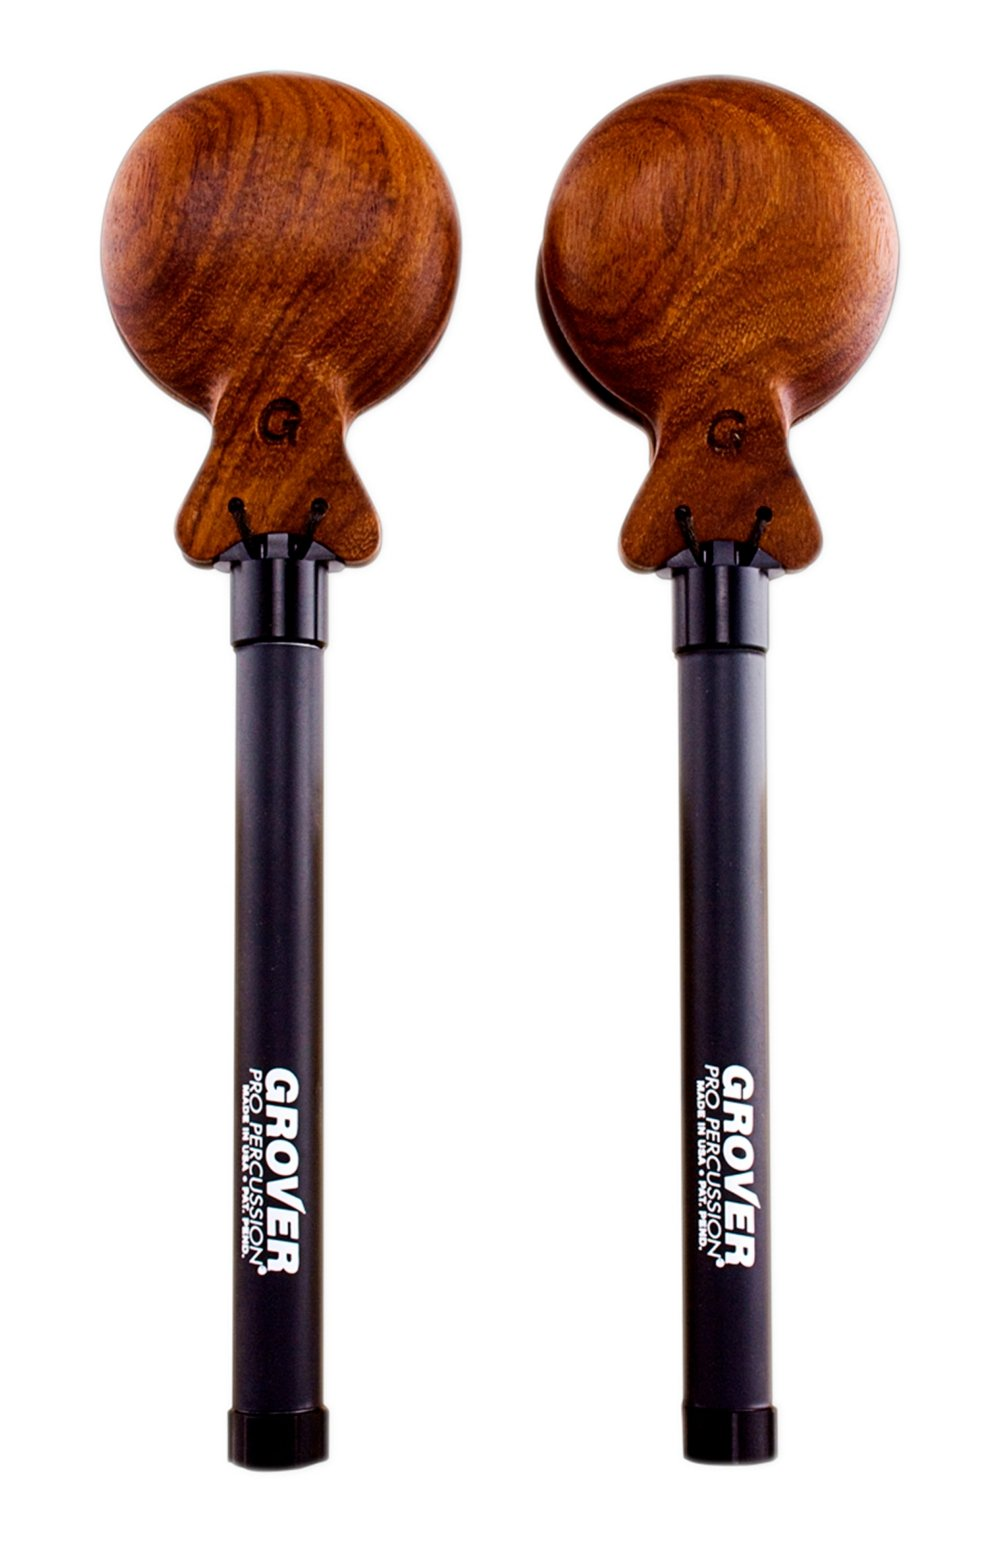 Grover Pro Granadillo Adjustable Tension Castanets (Pair) Large